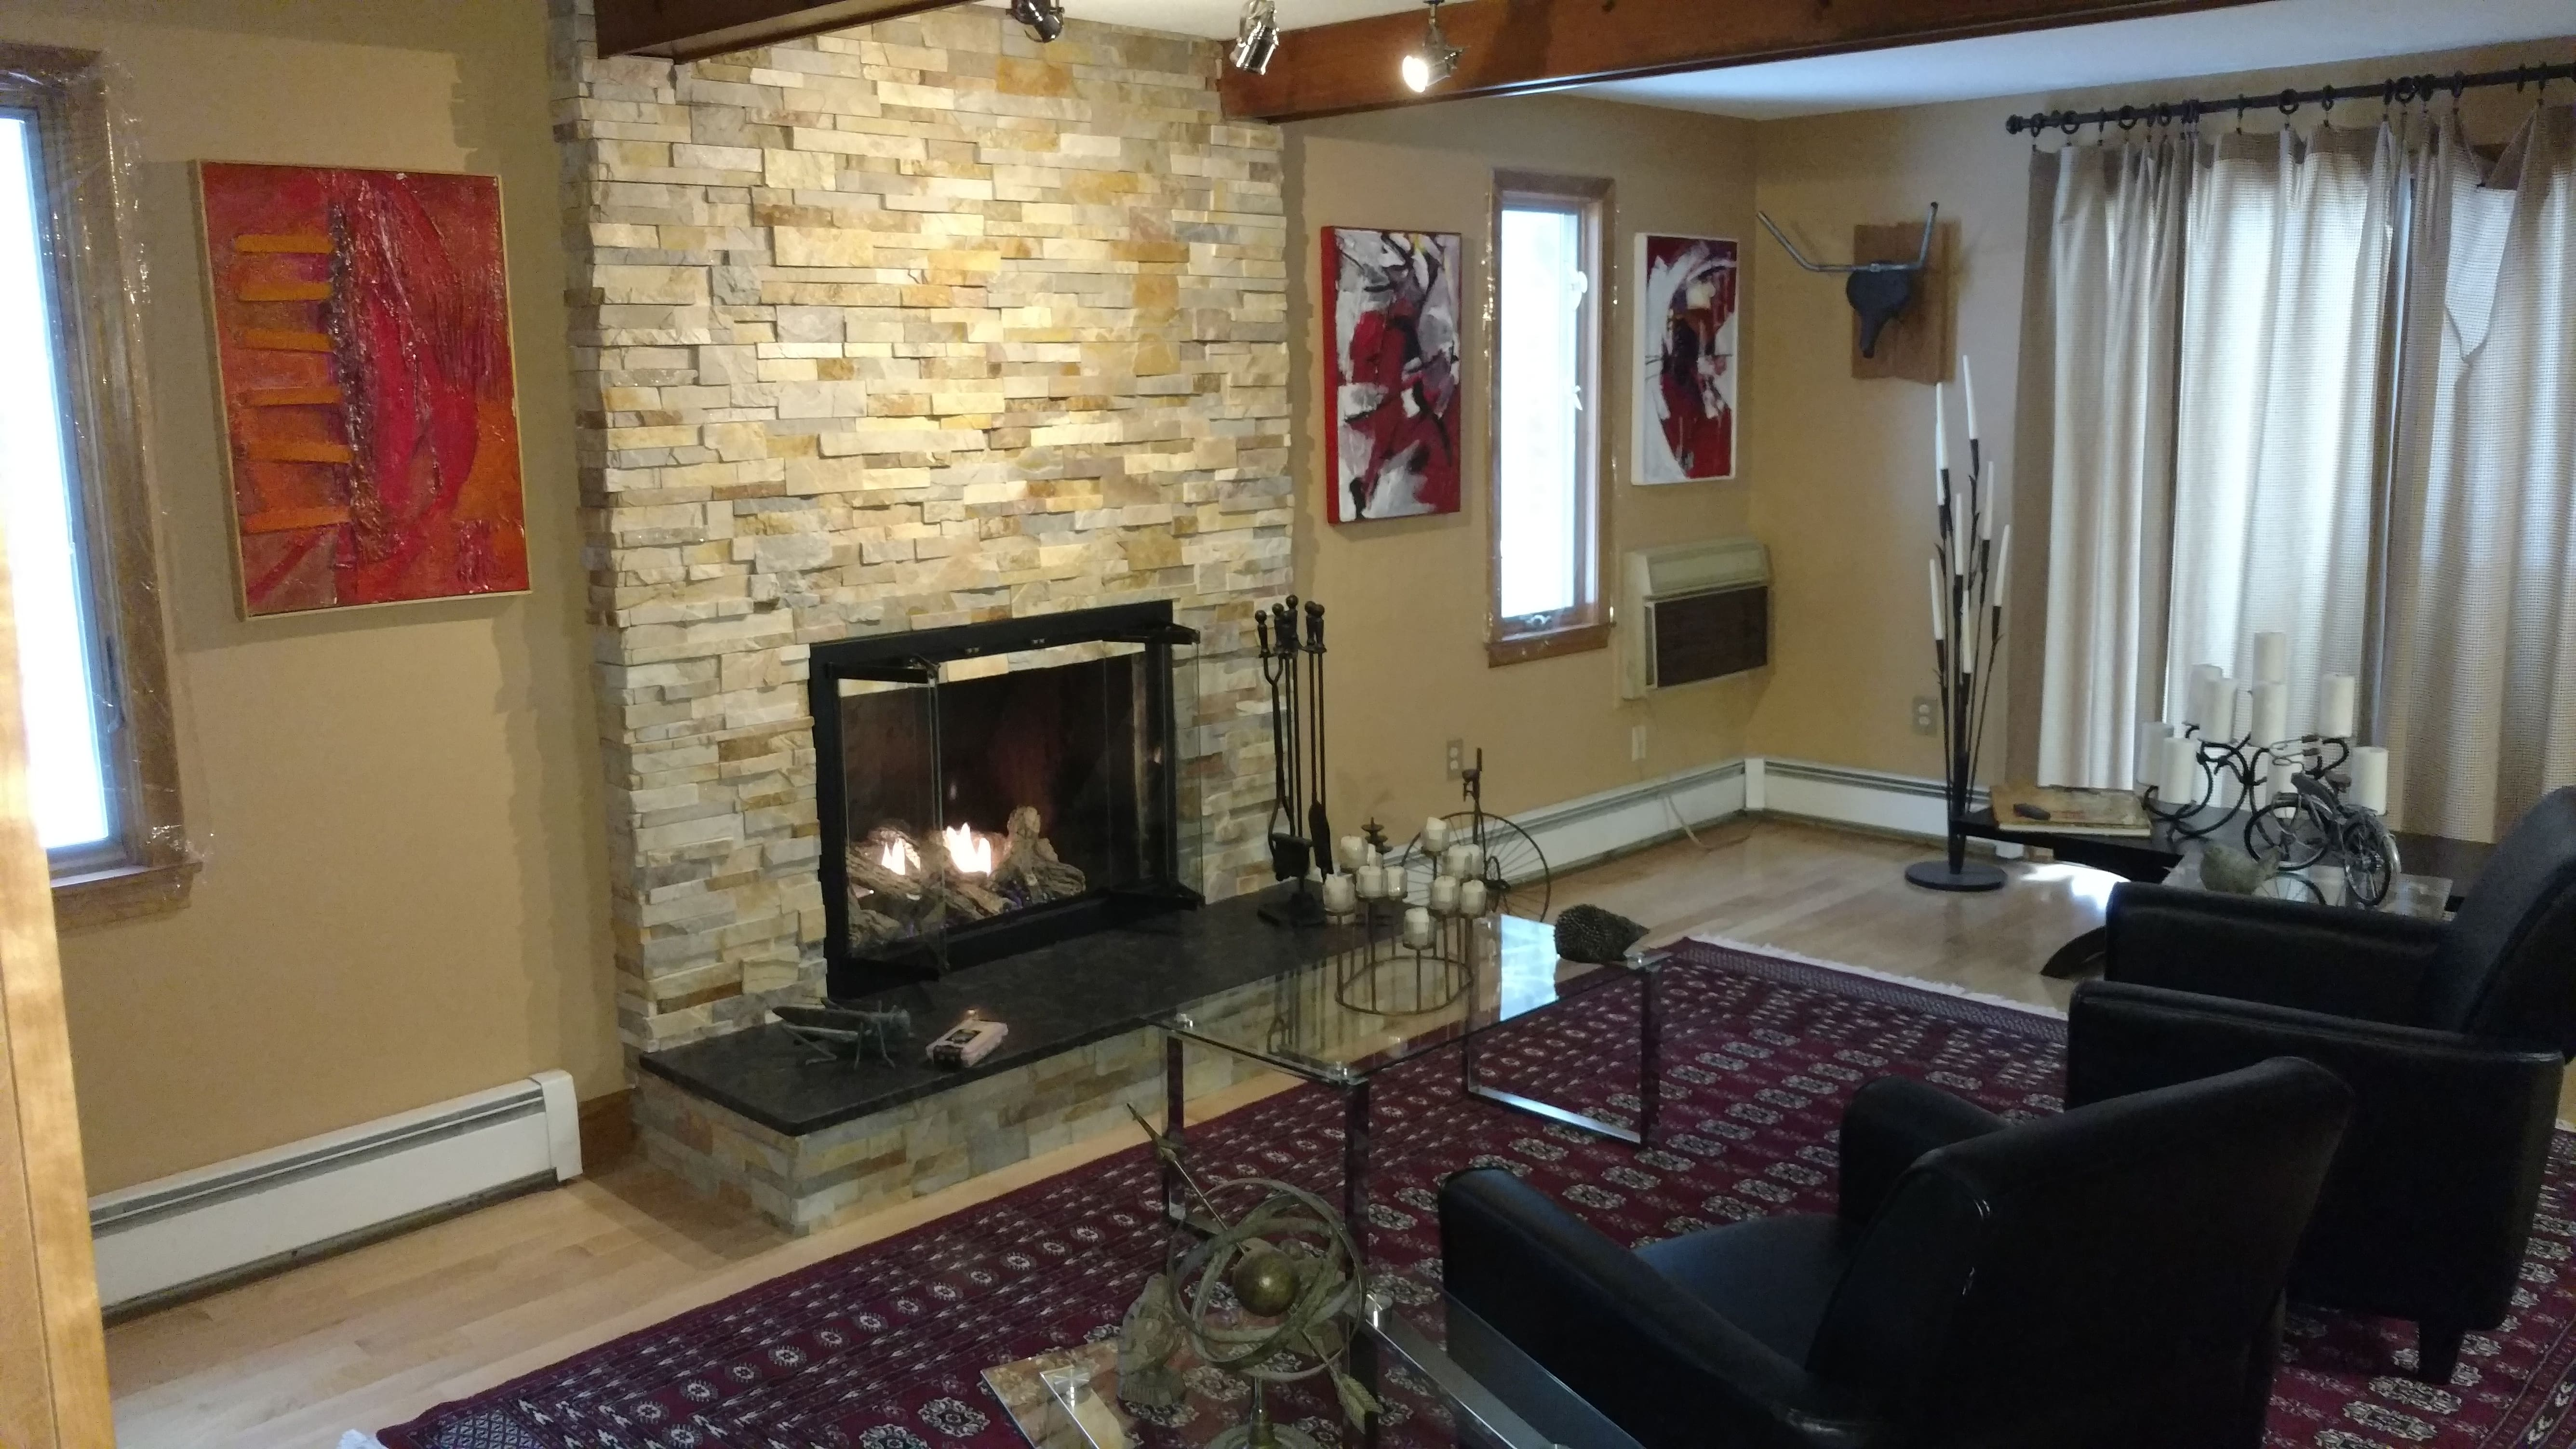 Norstone Aztec XL Stone Veneer Fireplace Remodel Project with new granite hearth stone